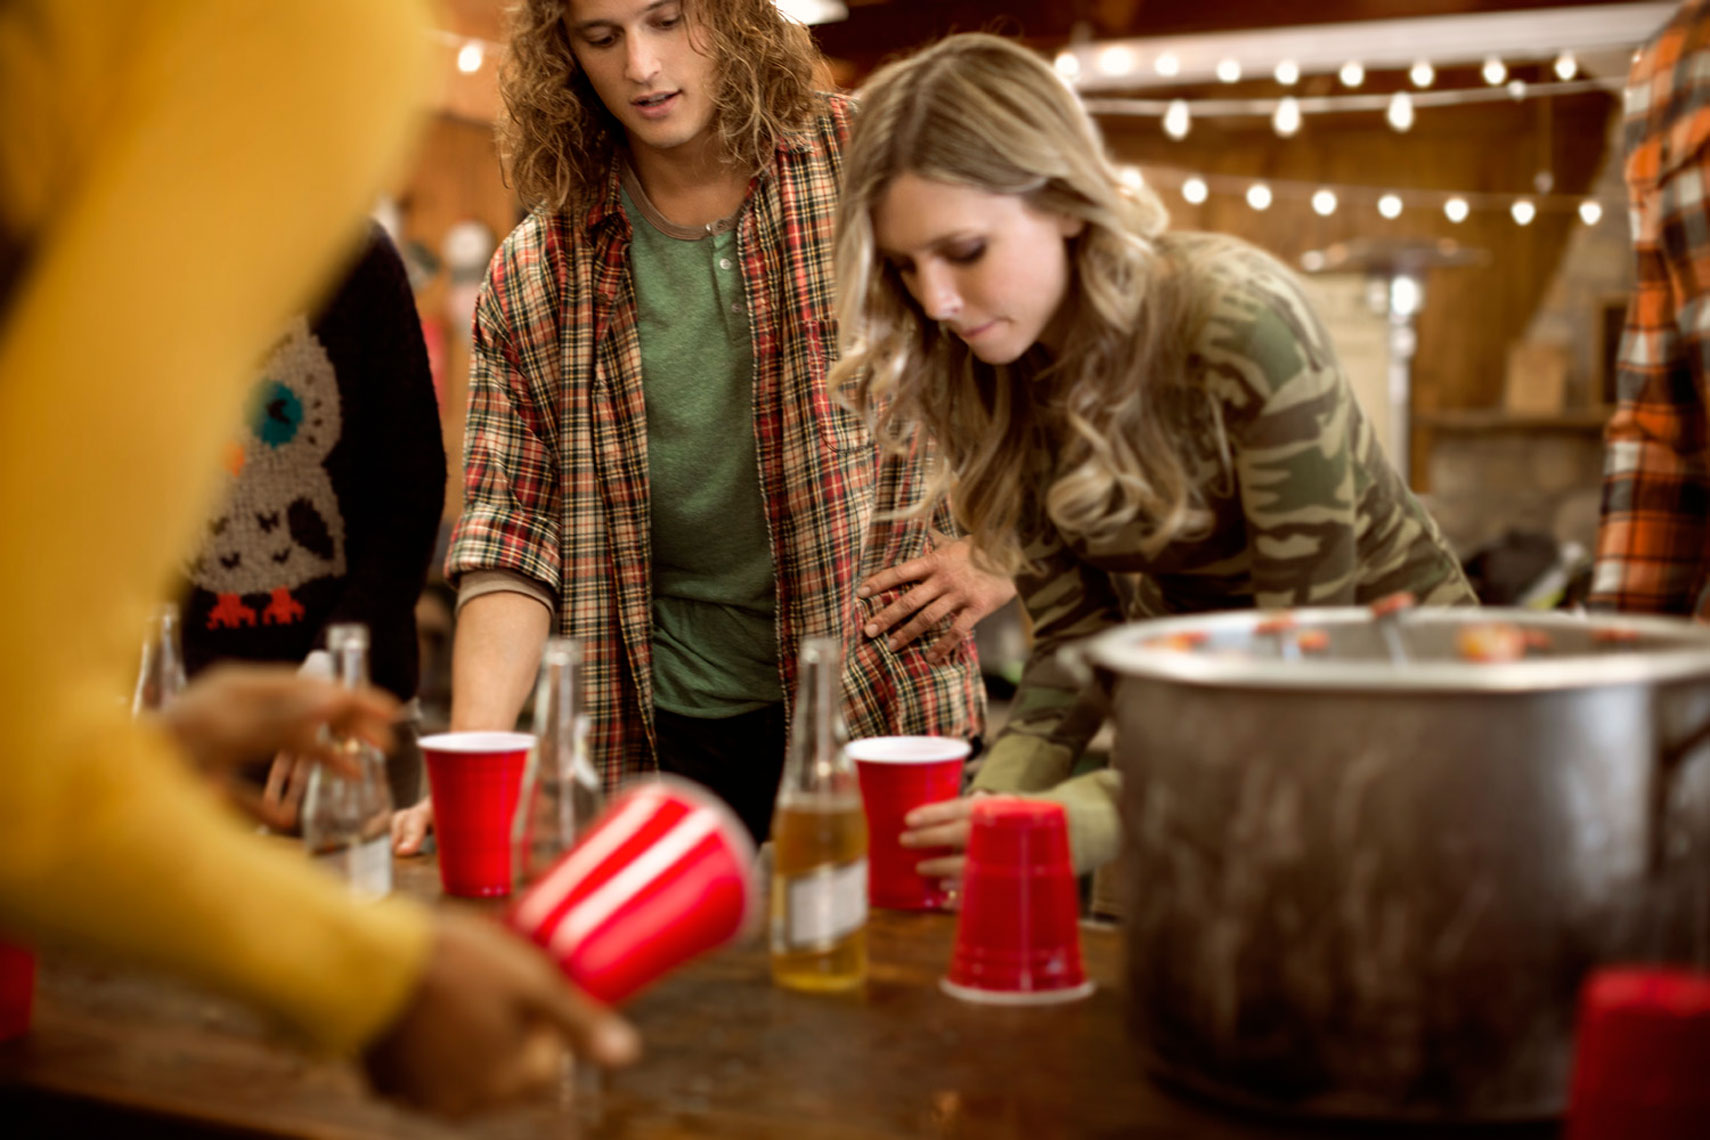 Fall Lifestyle: Beer Pong Scene: CORBIS